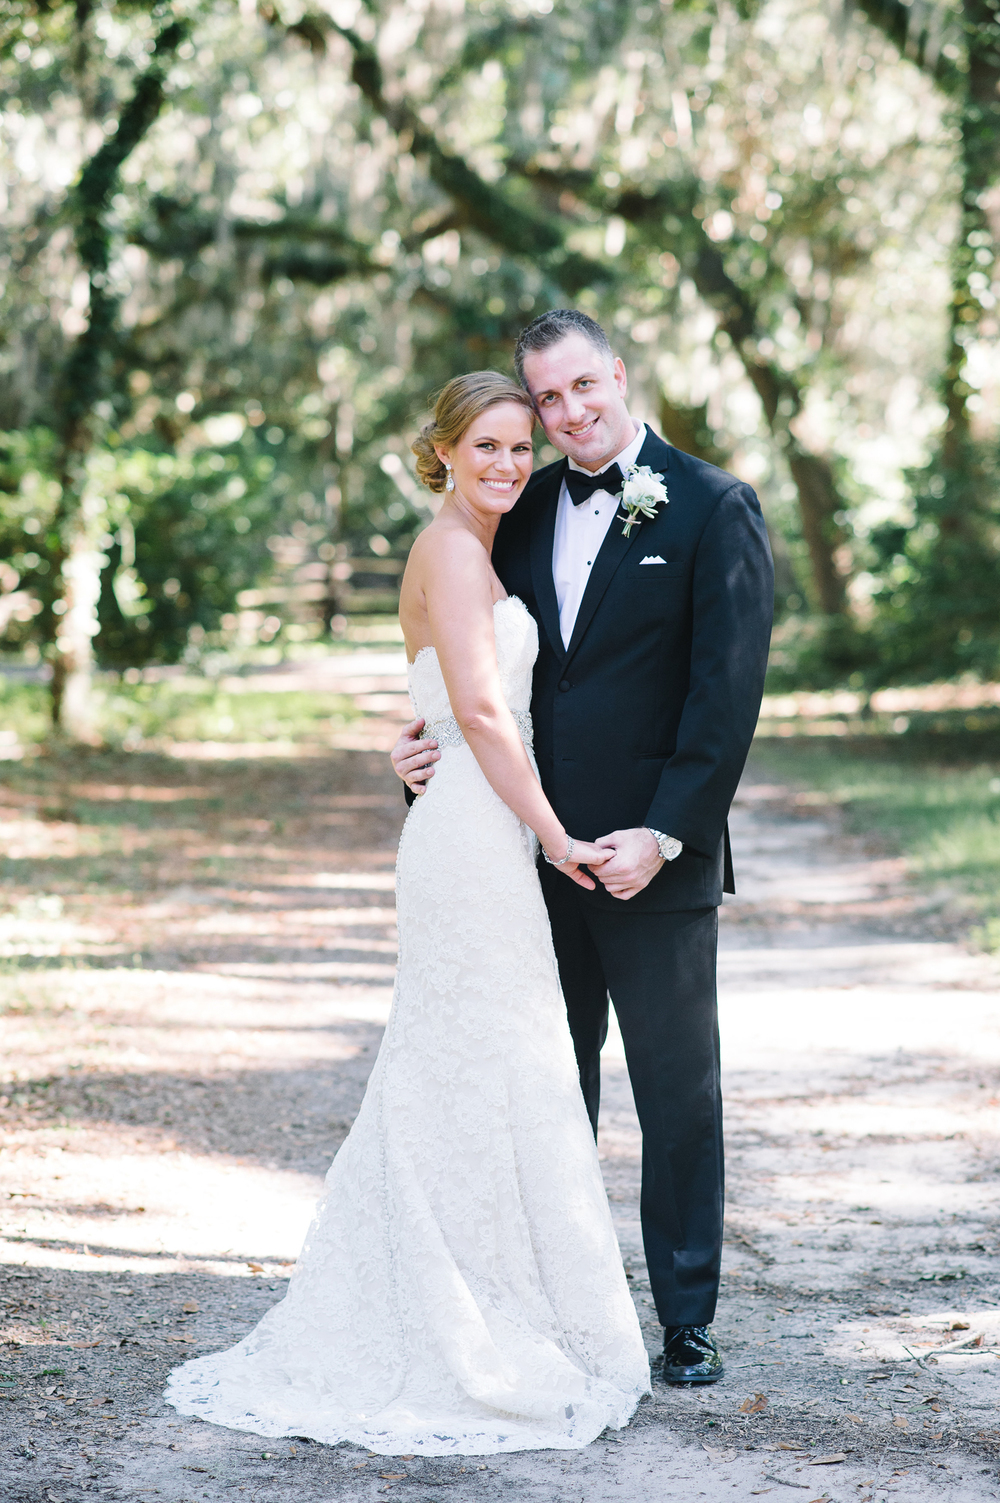 Charleston wedding at Legare Waring House